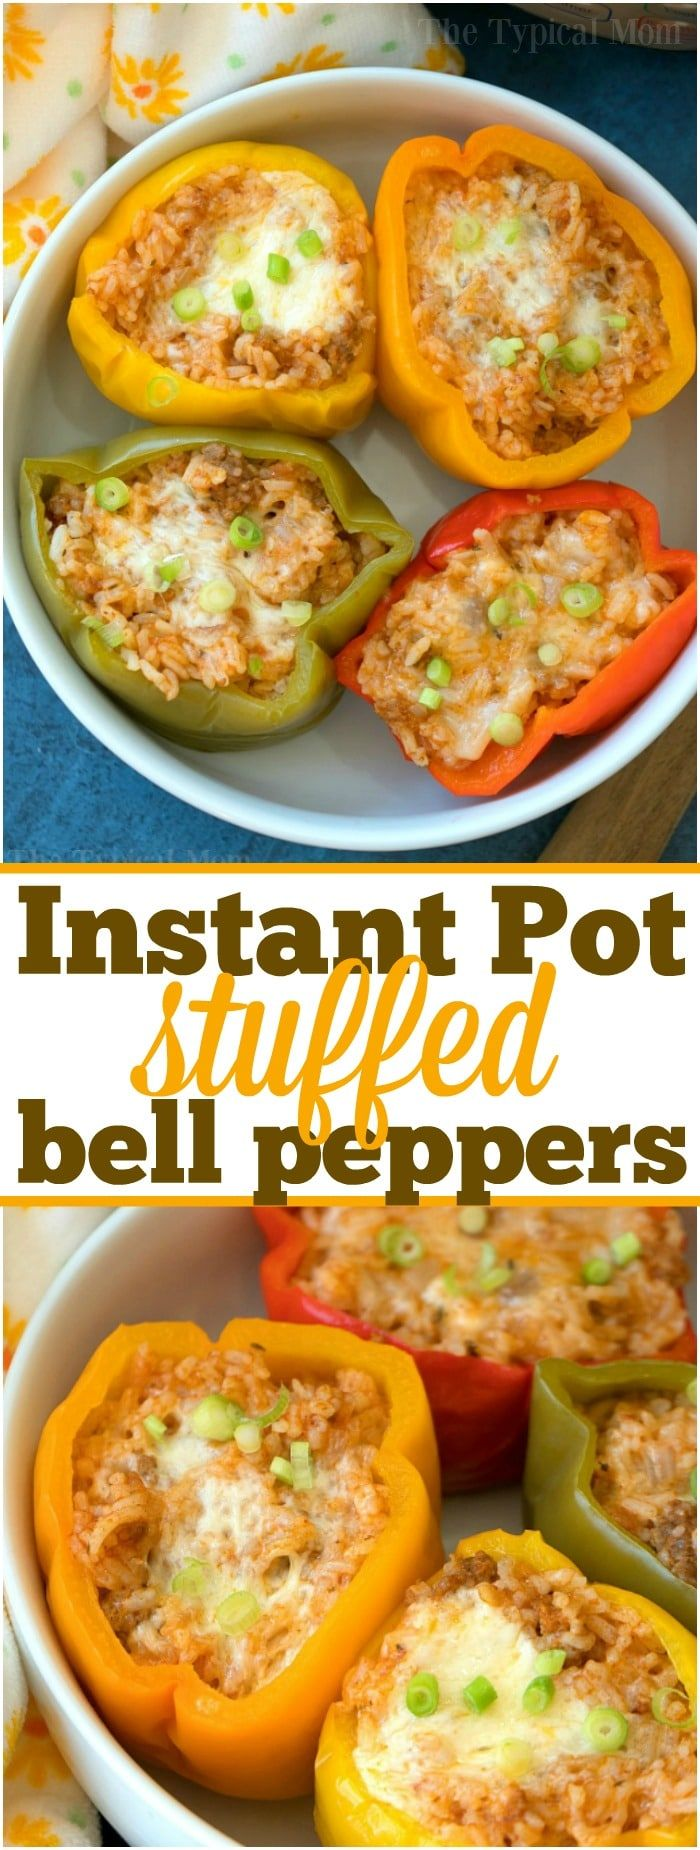 These Easy Instant Pot Stuffed Peppers Will Be Your Favorite Pressure Cooker Meal Easy Instant Pot Recipes Healthy Instant Pot Recipes Pressure Cooker Recipes